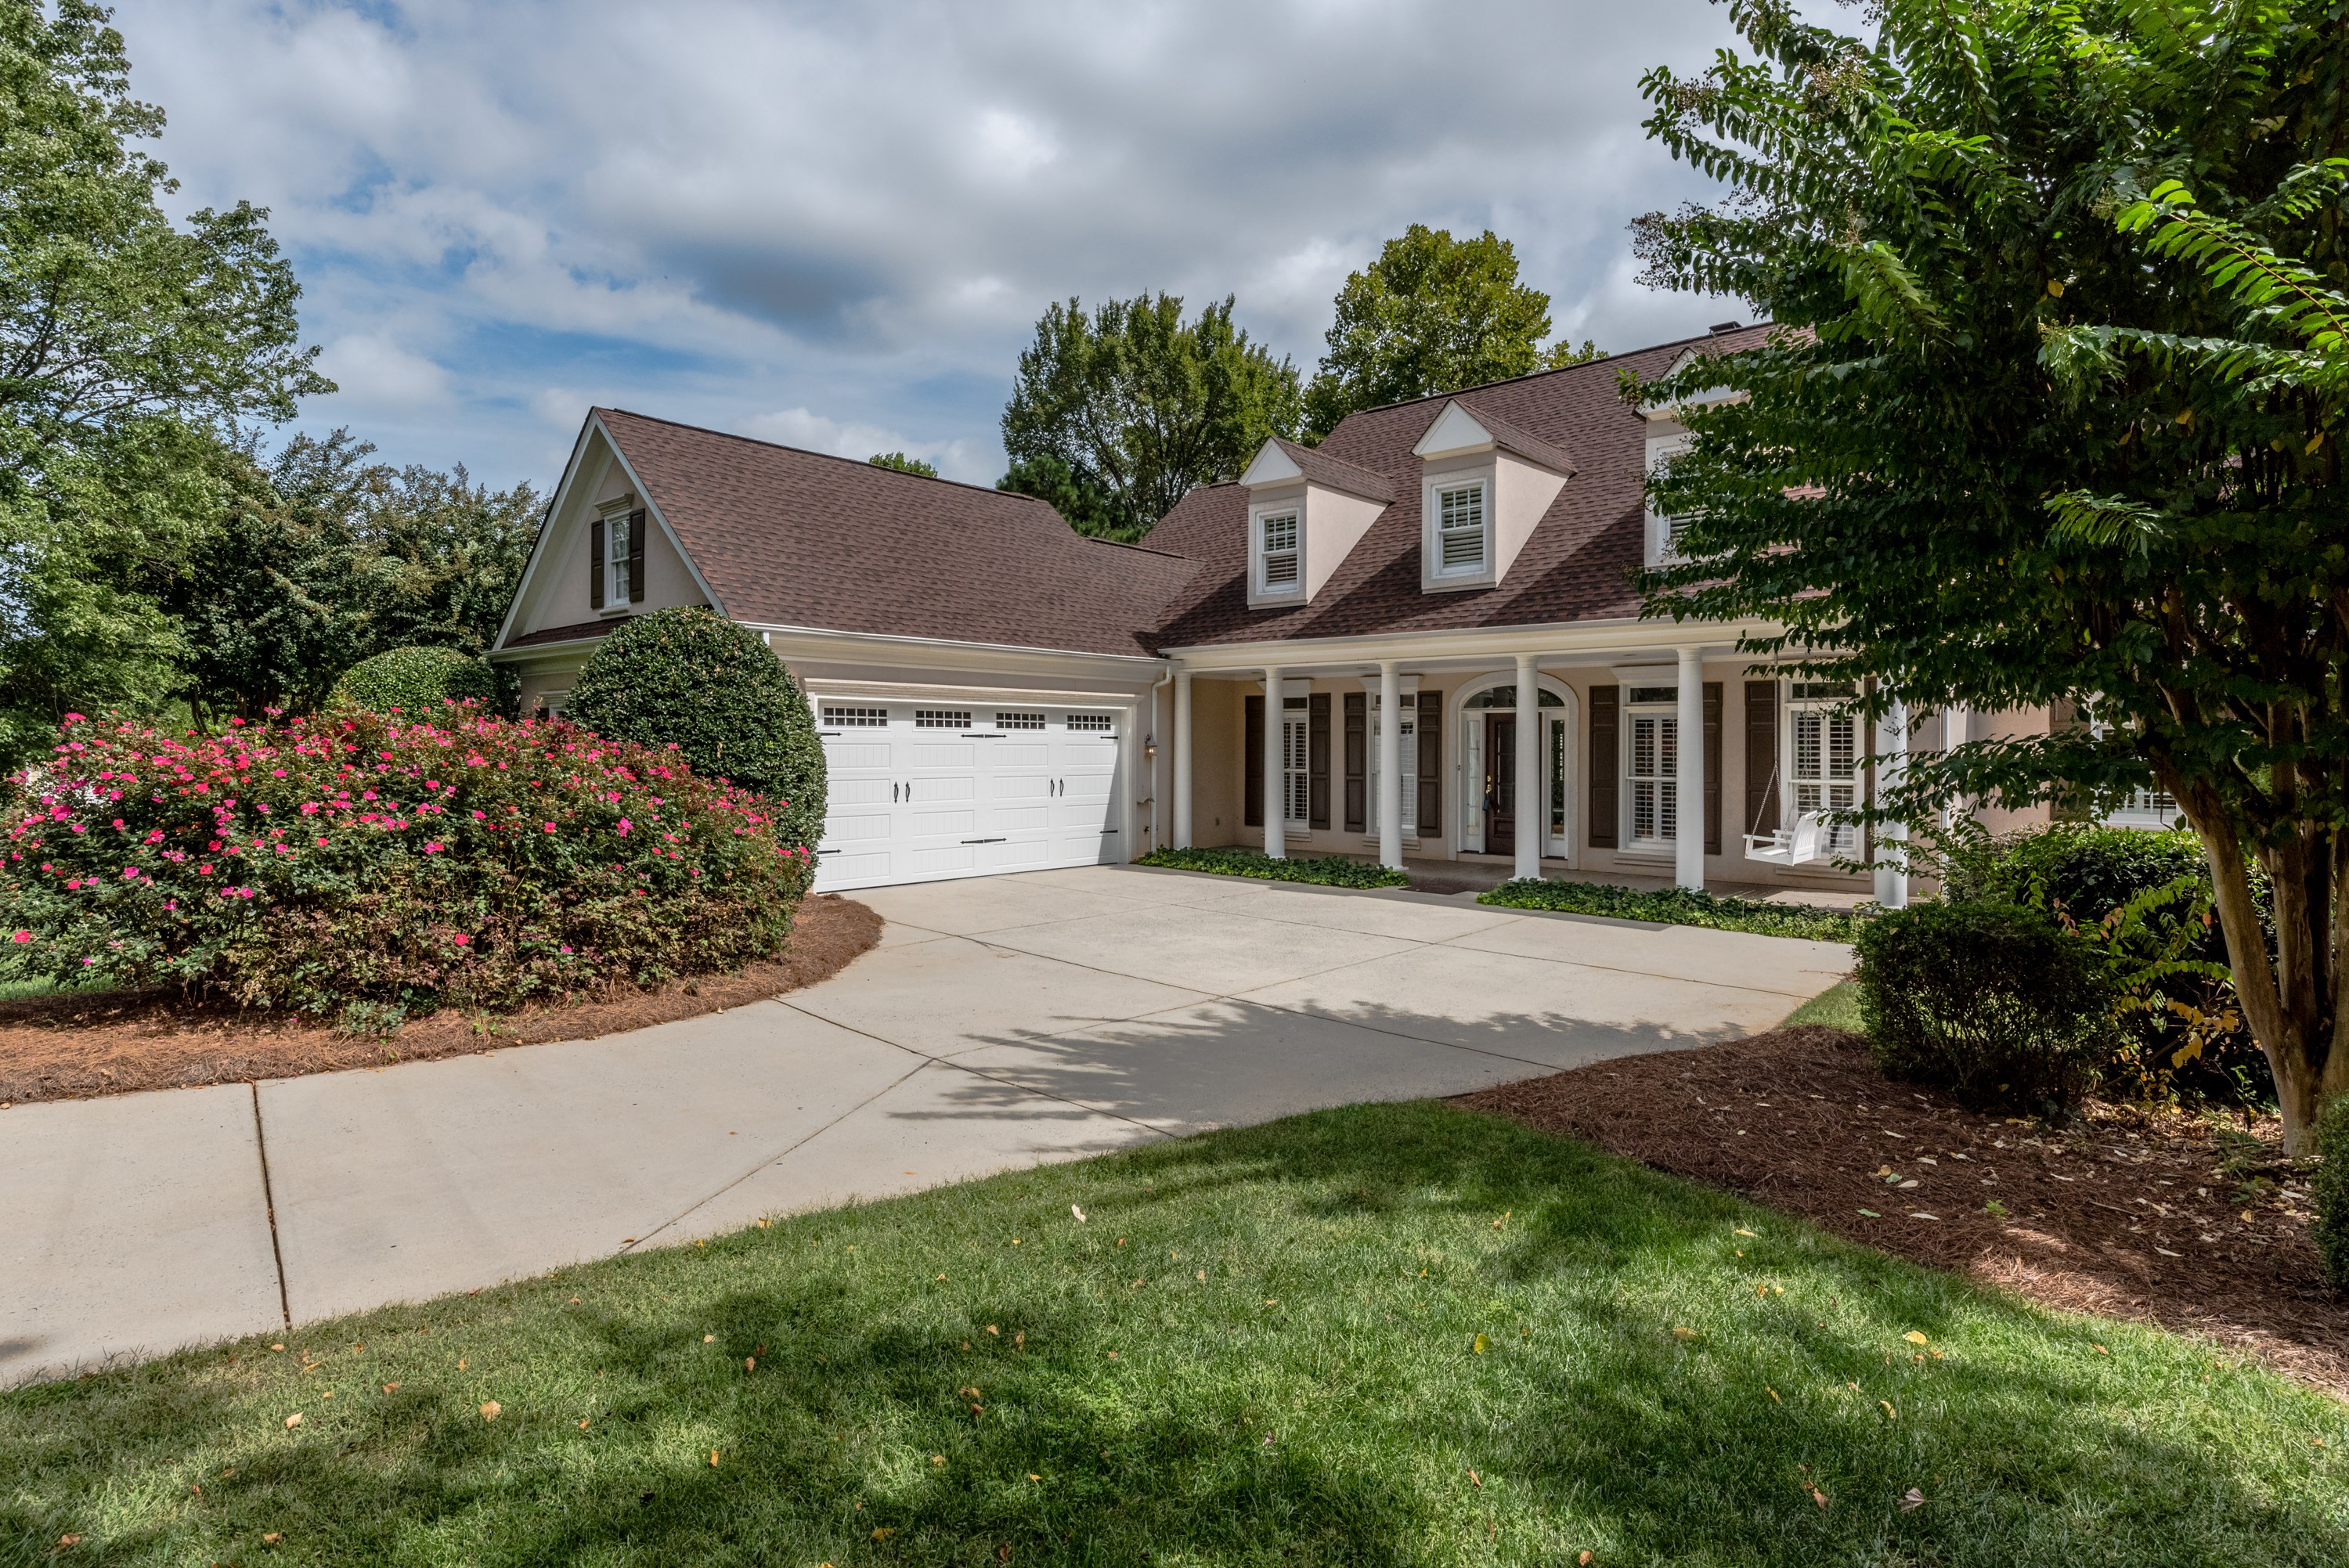 Ballantyne country club home typical